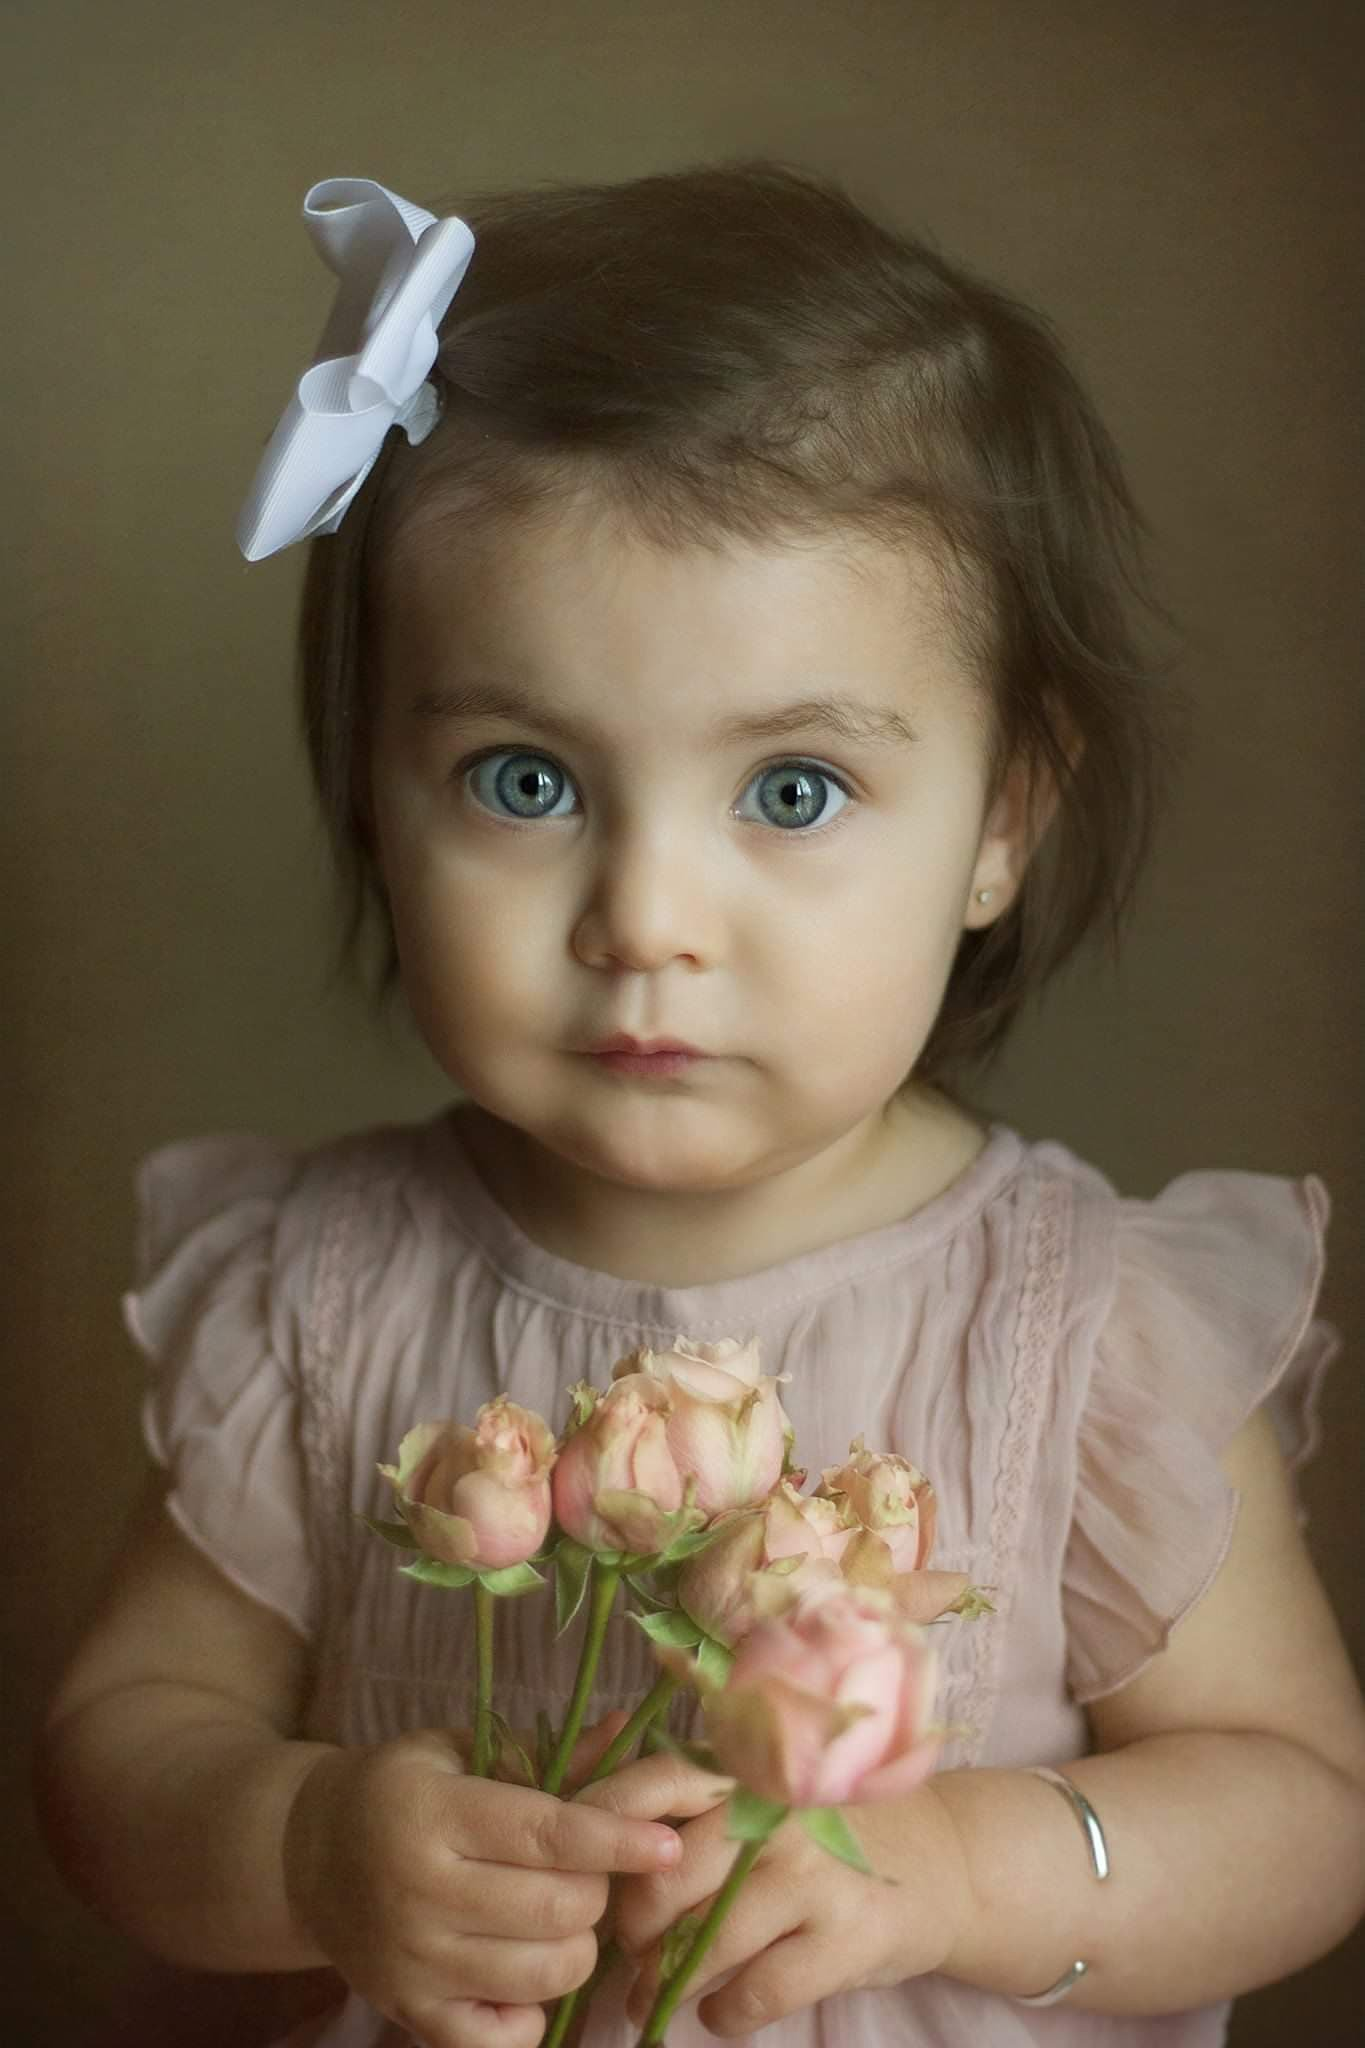 toddler holding flowers posing for studio pictures